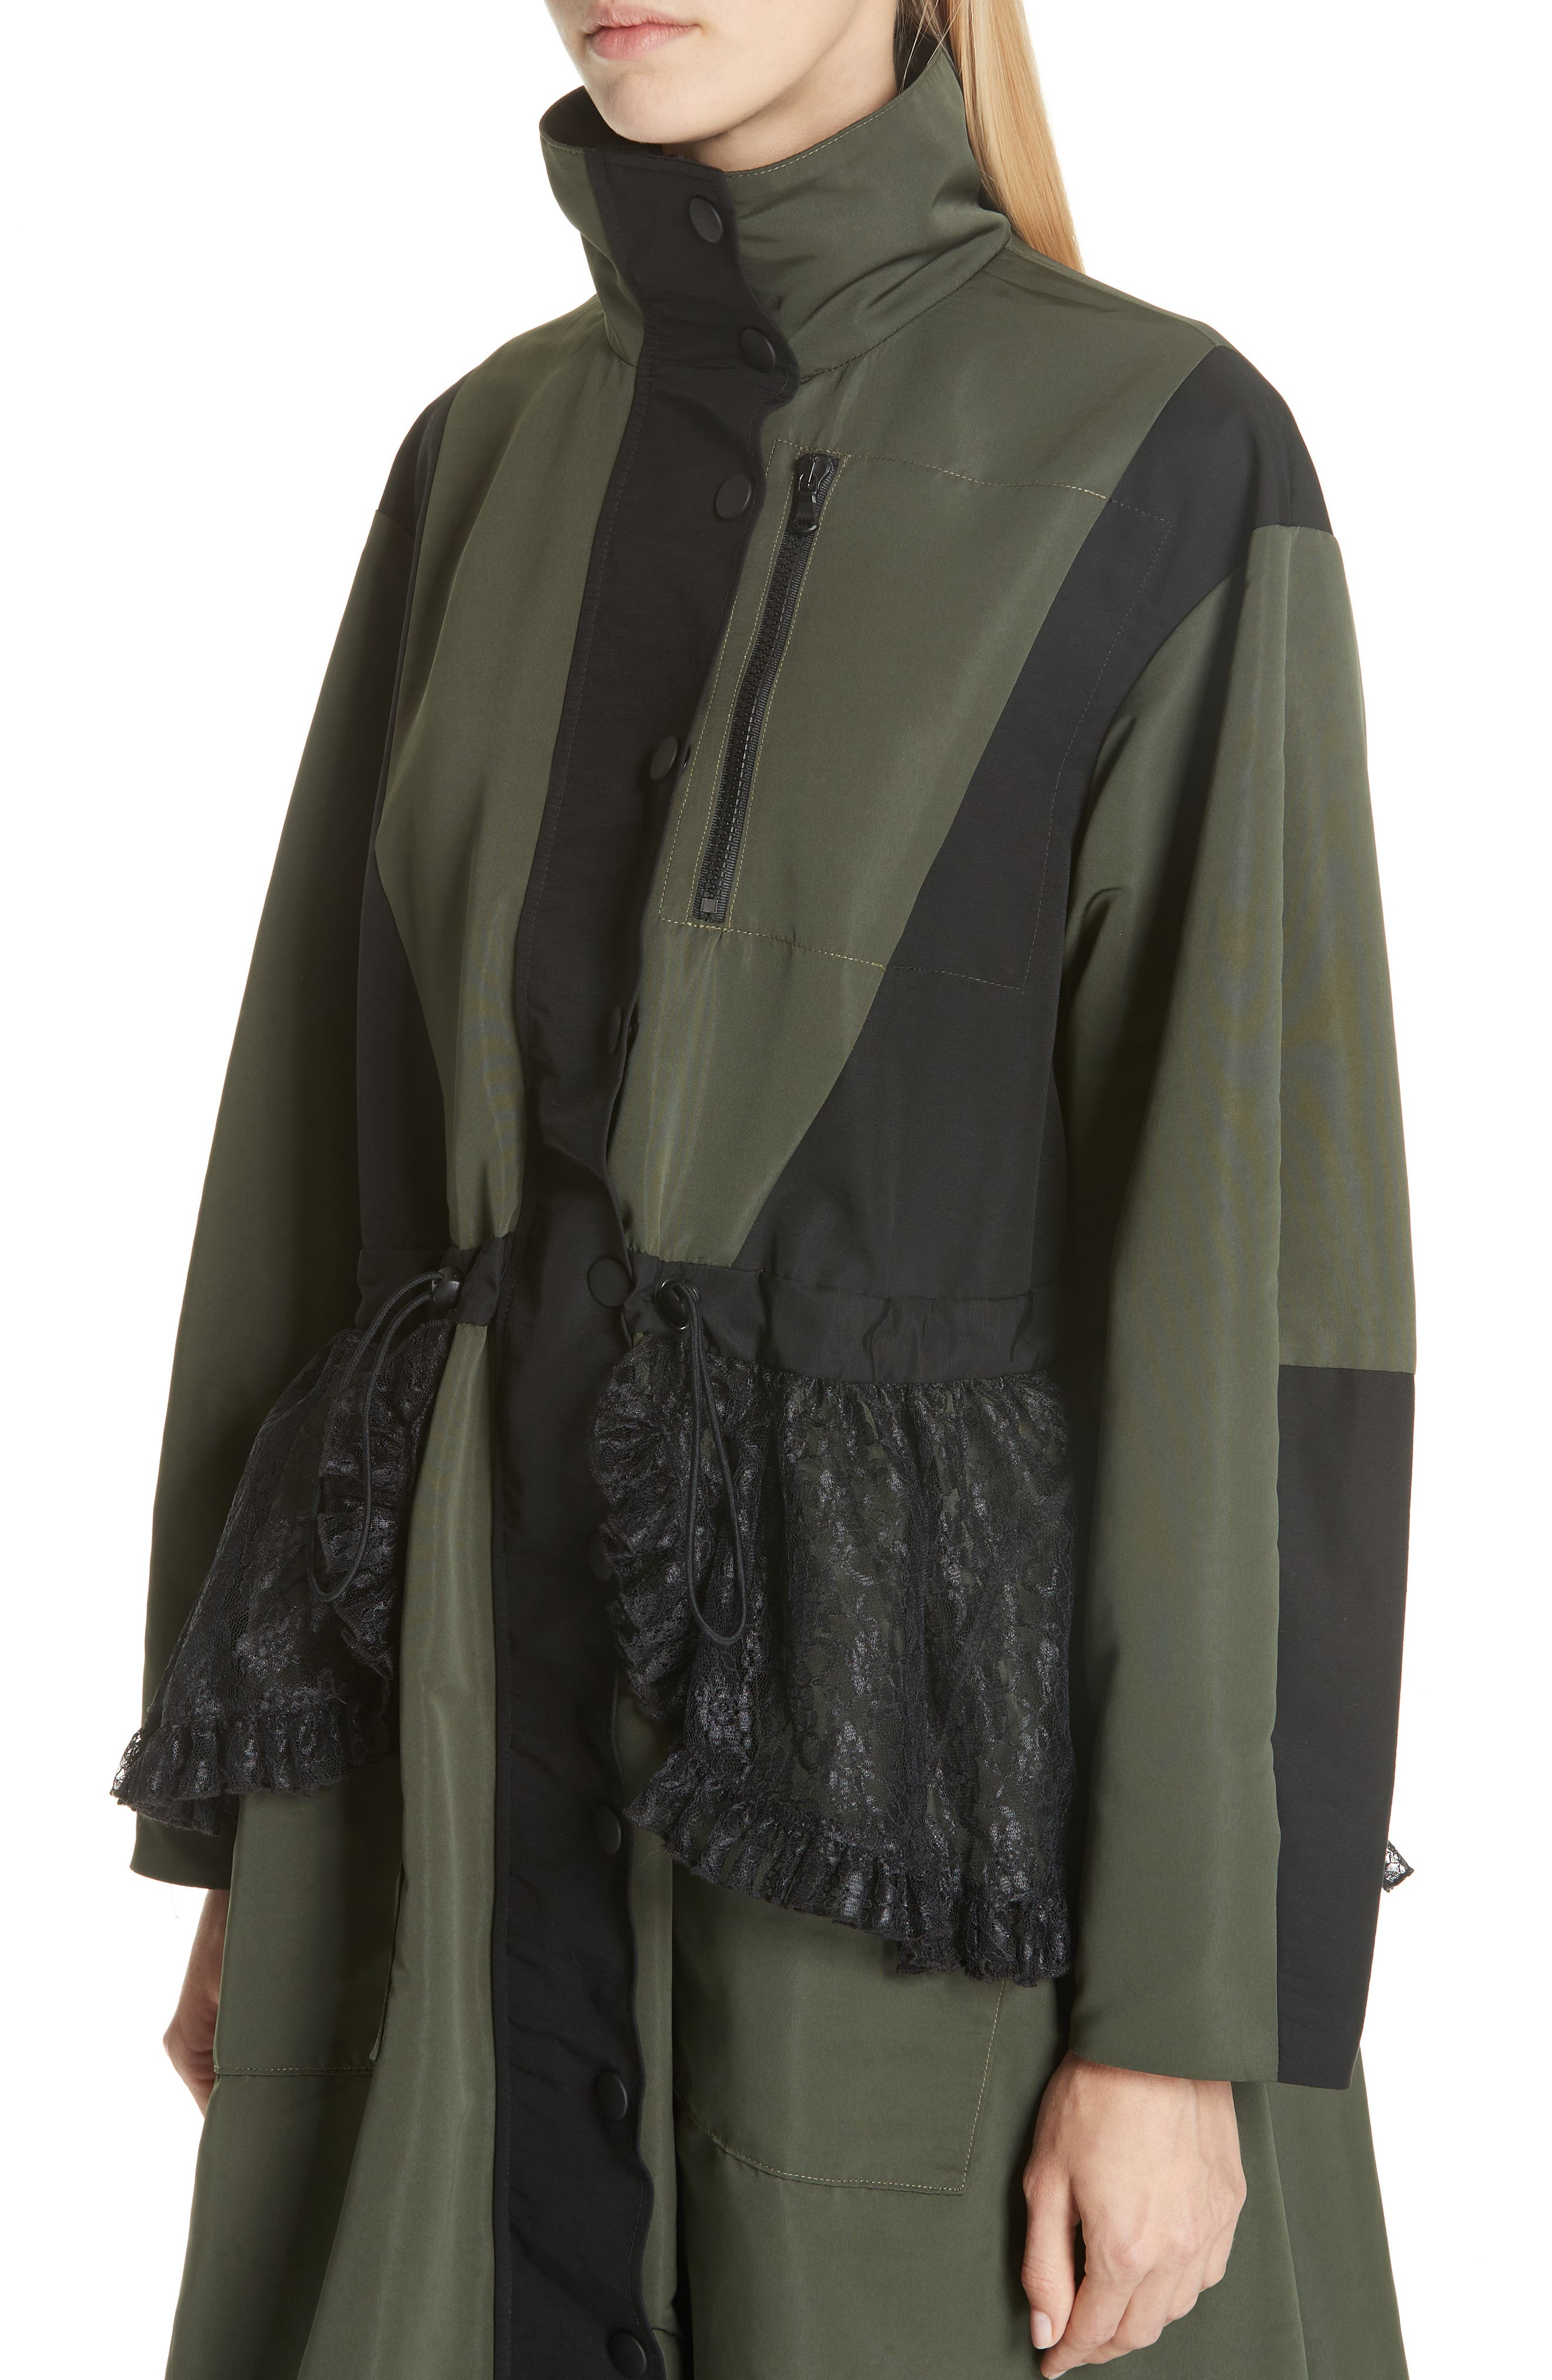 Lace Overlay Hooded Coat,                             Alternate thumbnail 2, color,                             OLIVE BLACK